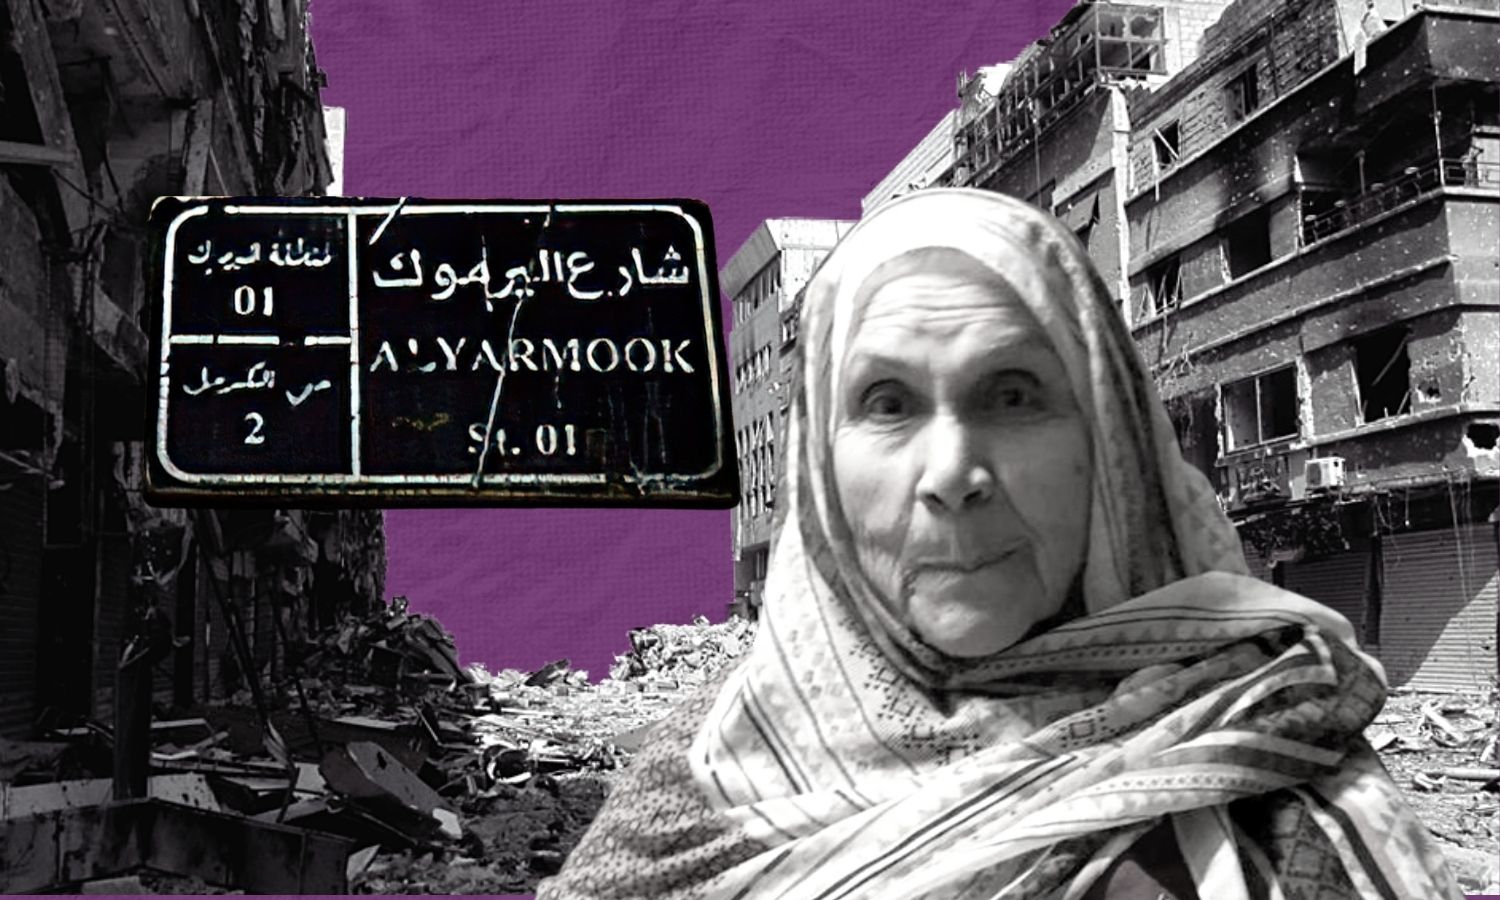 A displaced woman from the Yarmouk camp to the south of the Syrian capital Damascus with destroyed buildings behind her. A street name sign could also be seen with the name of Yarmouk Street, one of the Yarmouk camp streets (edited by Enab Baladi)